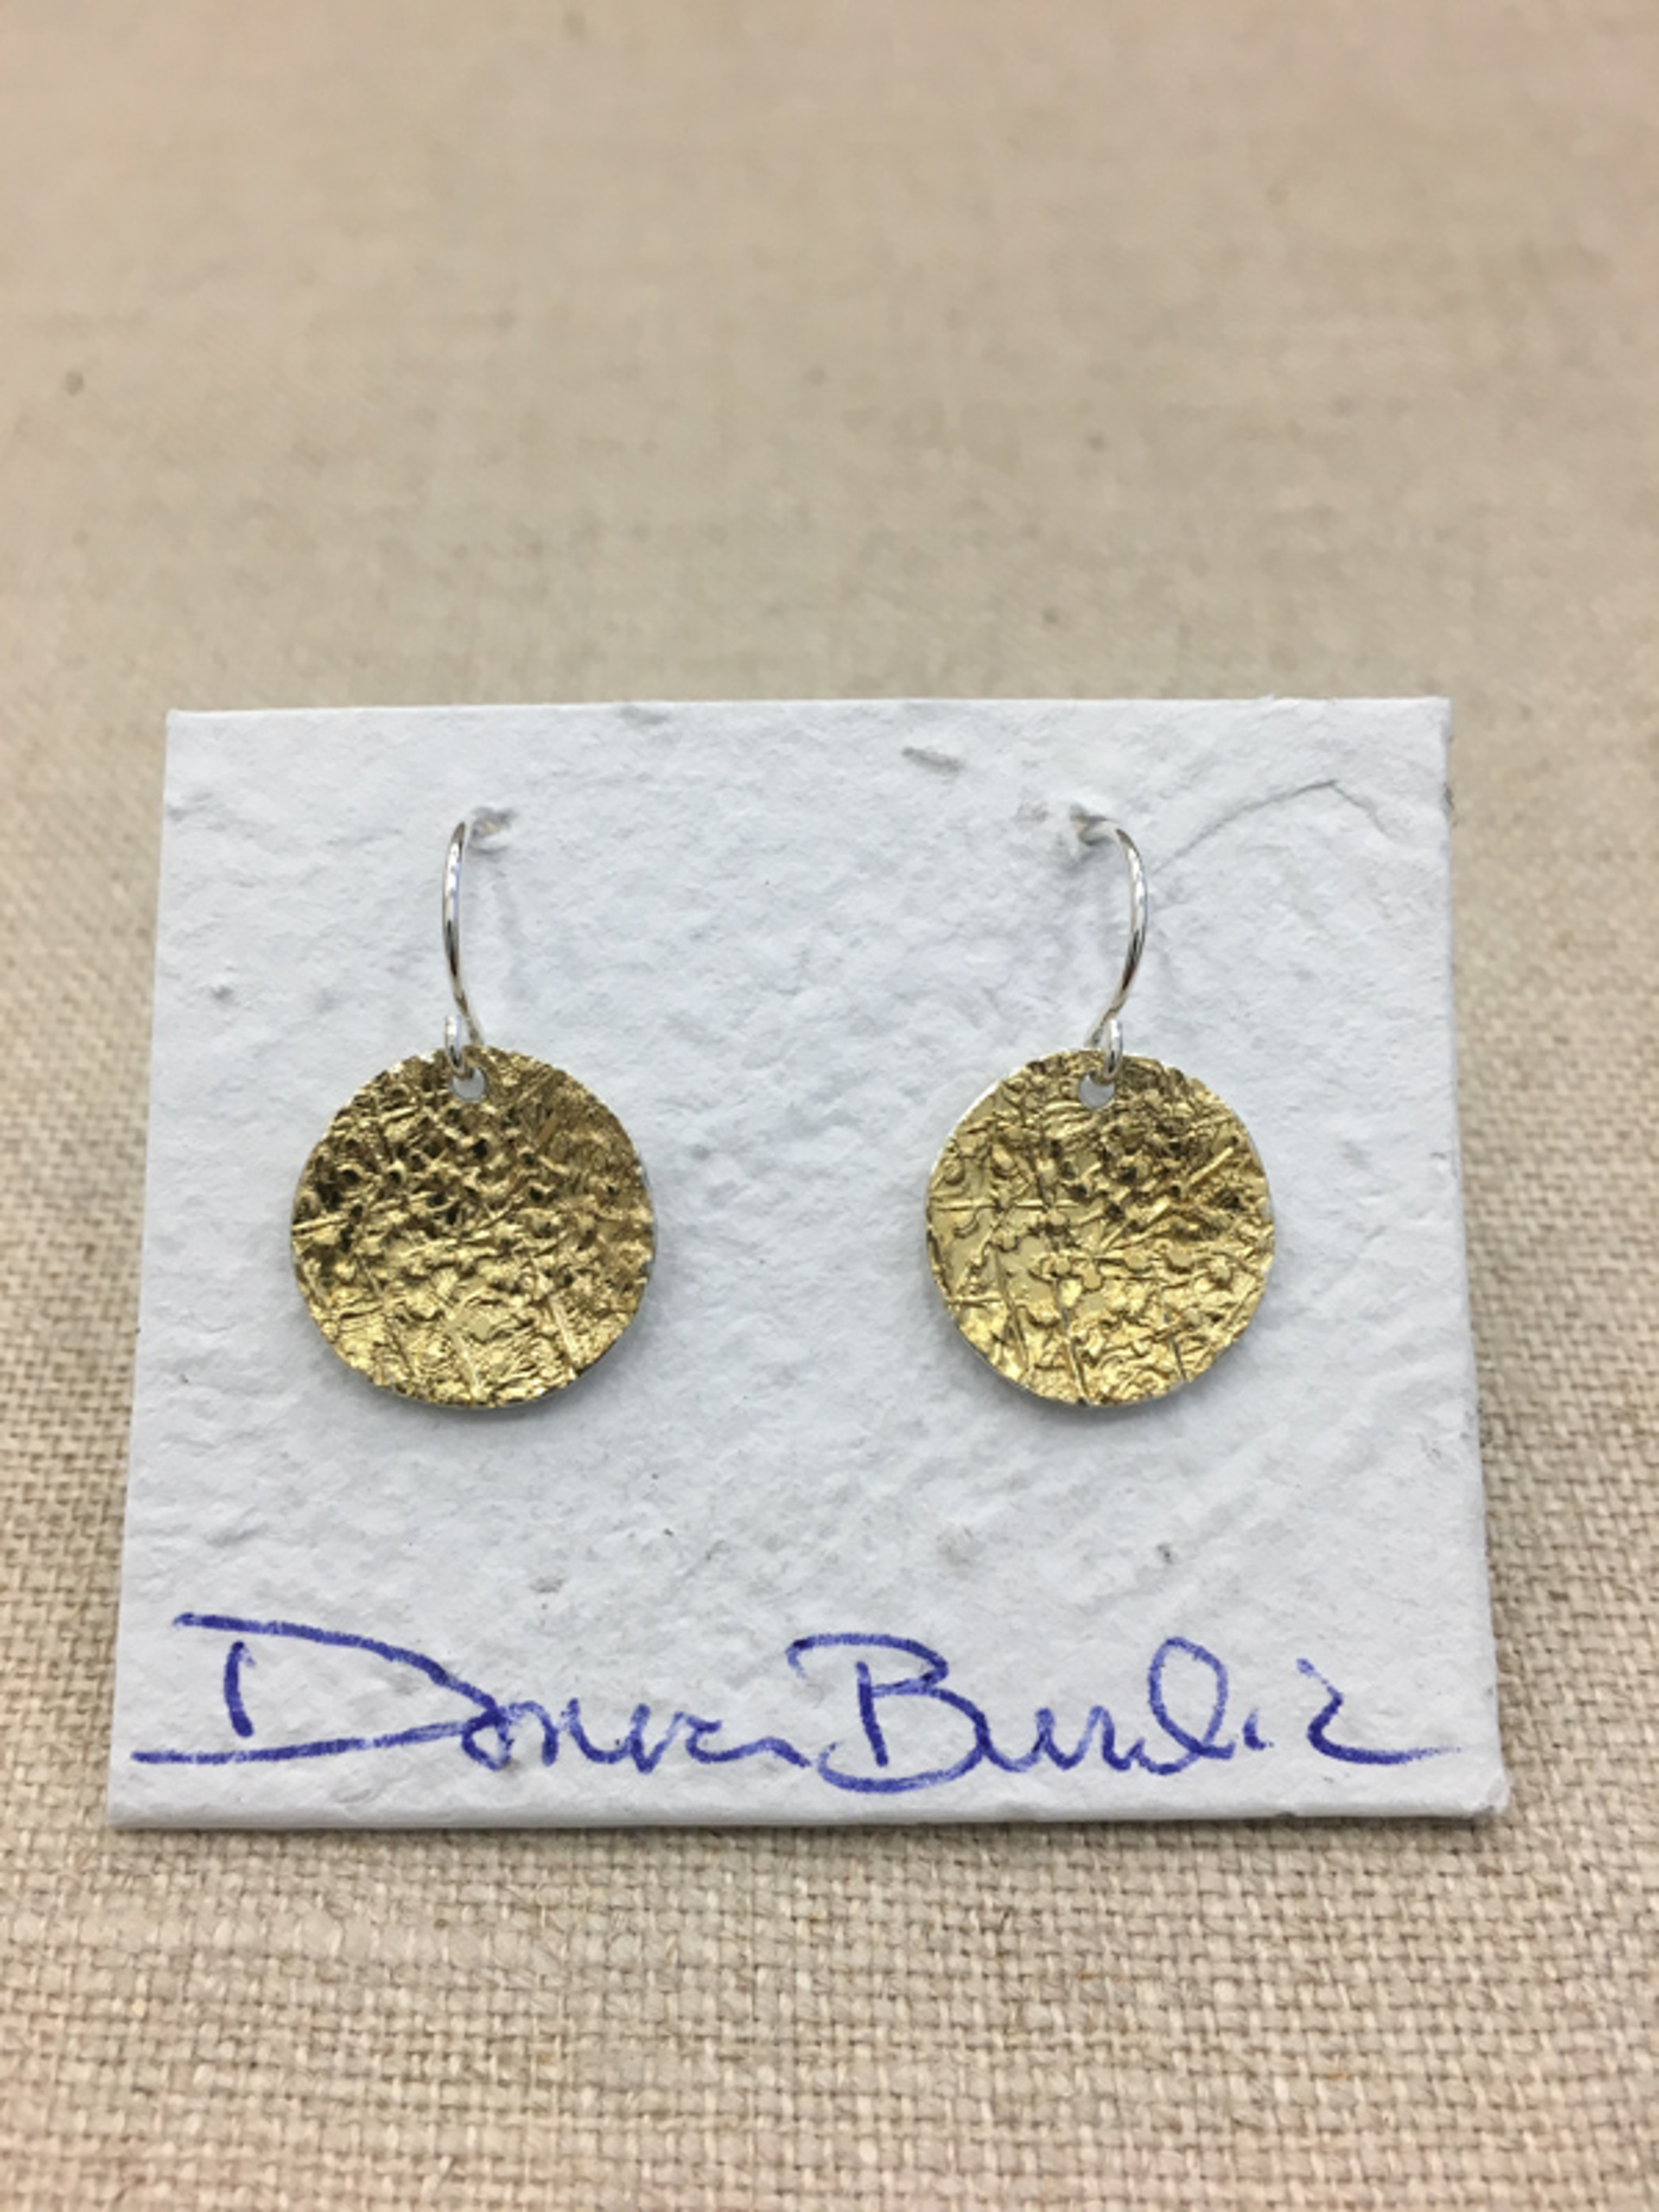 1457-1 Earrings by Donna Burdic